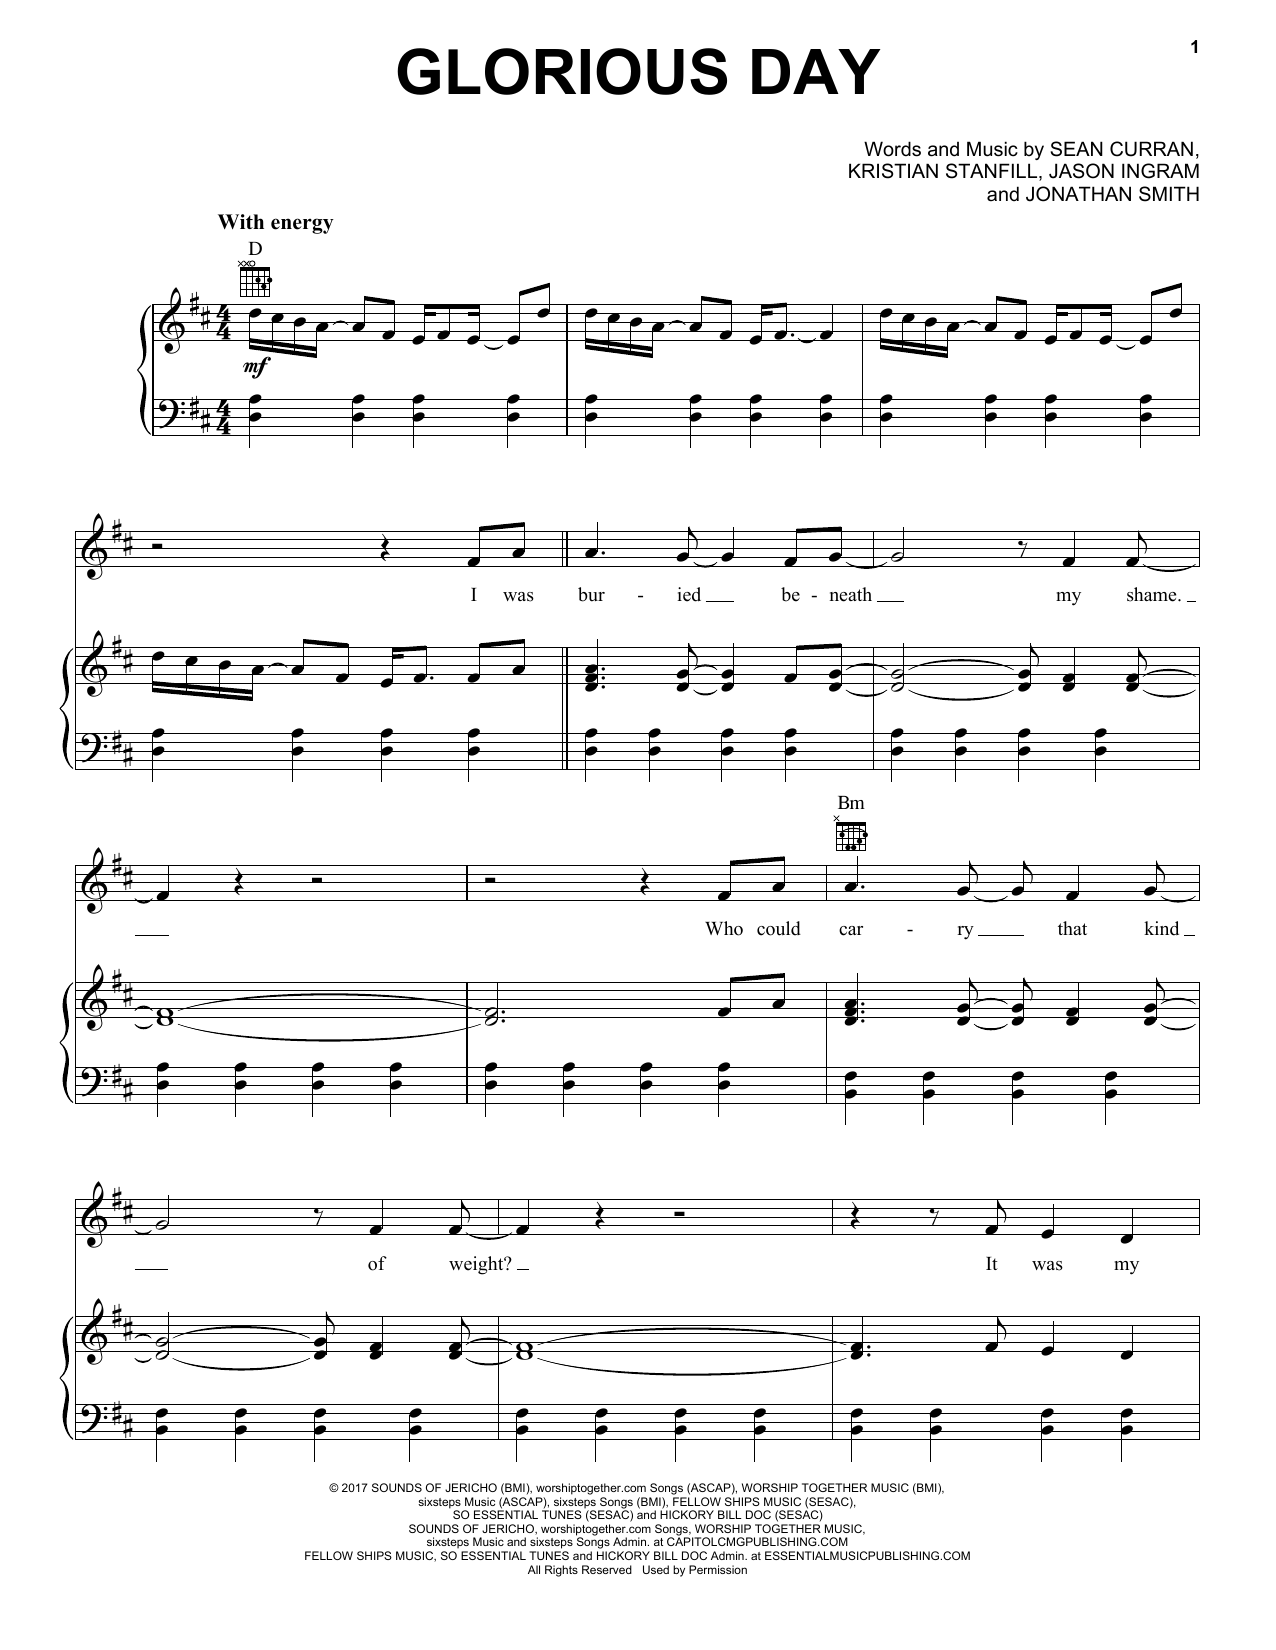 Passion Glorious Day Sheet Music Notes Chords Download